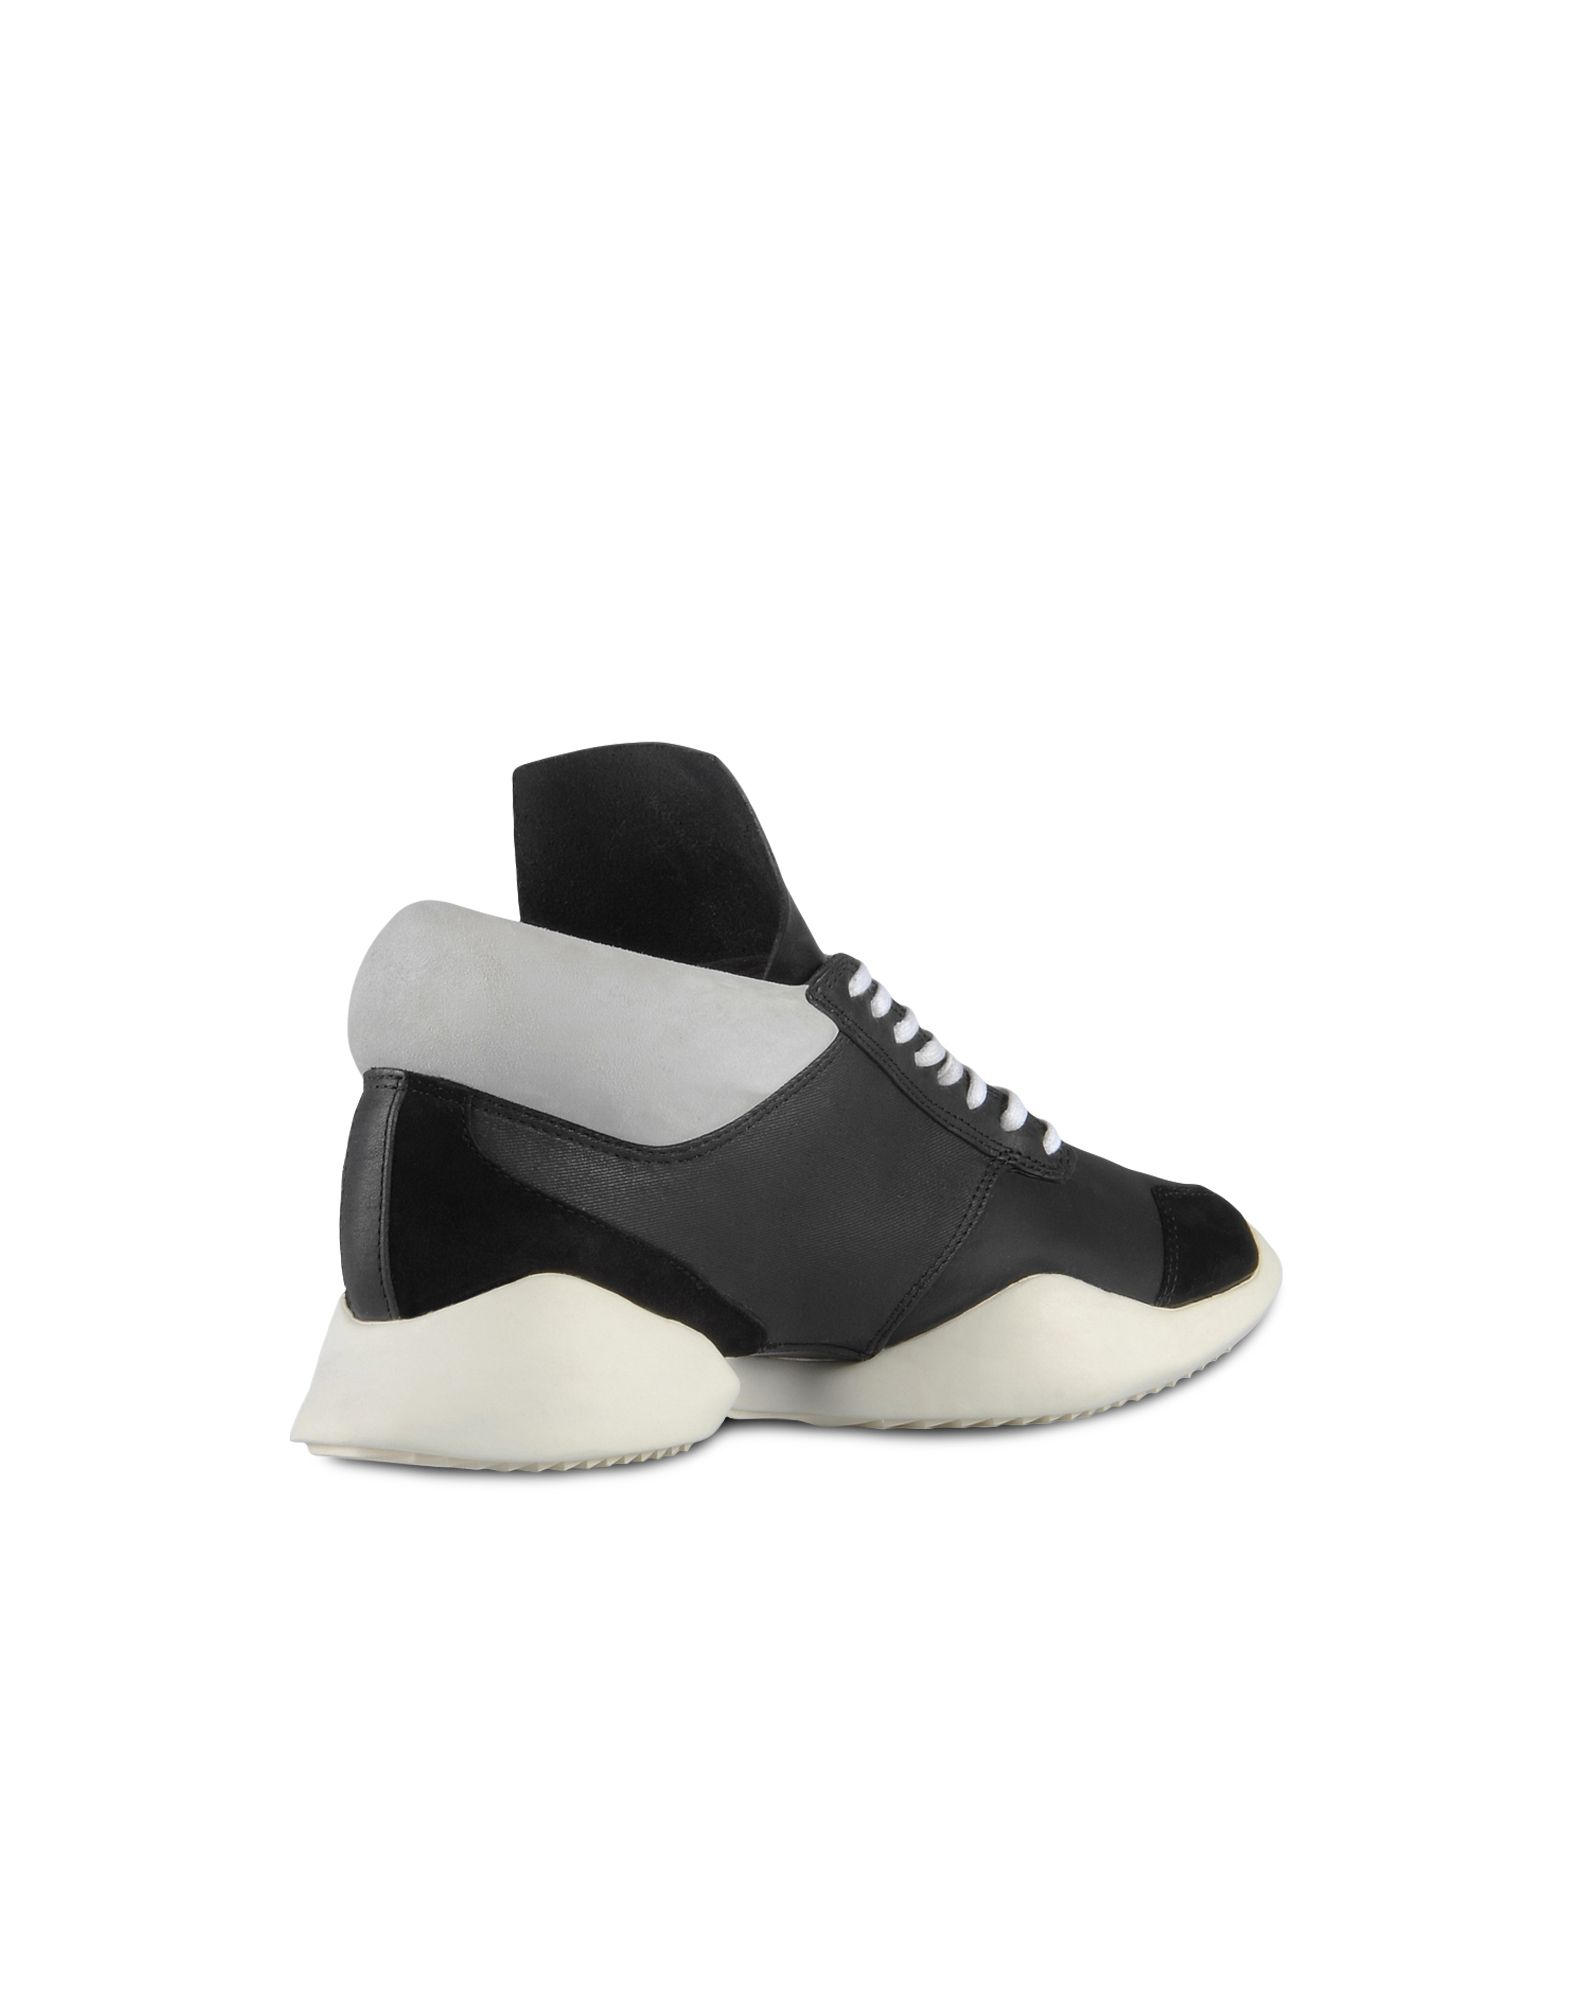 sneakers adidas x rick owens runner shoes for women online official store. Black Bedroom Furniture Sets. Home Design Ideas